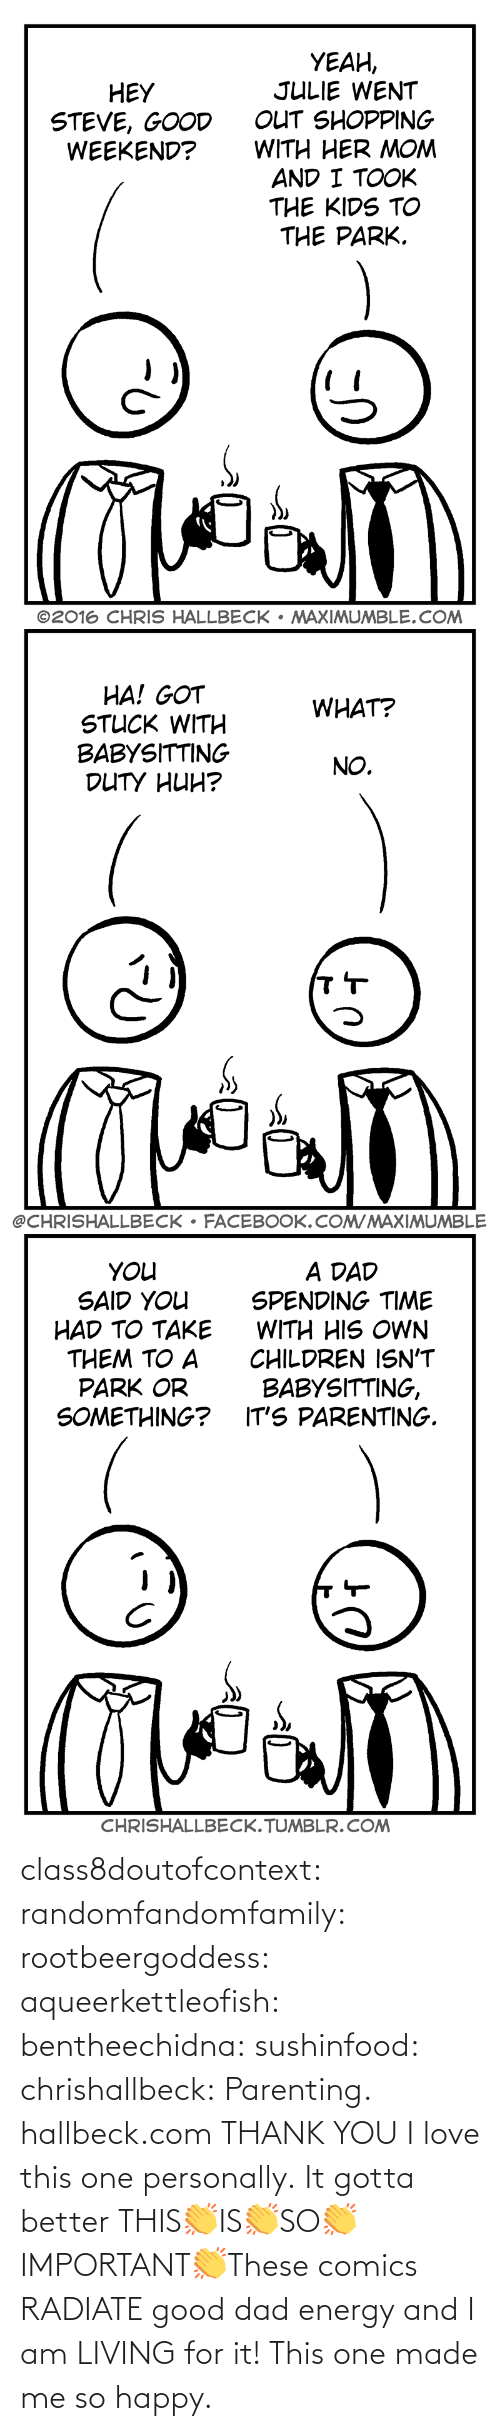 Living: class8doutofcontext: randomfandomfamily:  rootbeergoddess:  aqueerkettleofish:  bentheechidna:  sushinfood:  chrishallbeck:  Parenting. hallbeck.com  THANK YOU  I love this one personally.    It gotta better   THIS👏IS👏SO👏IMPORTANT👏These comics RADIATE good dad energy and I am LIVING for it!    This one made me so happy.